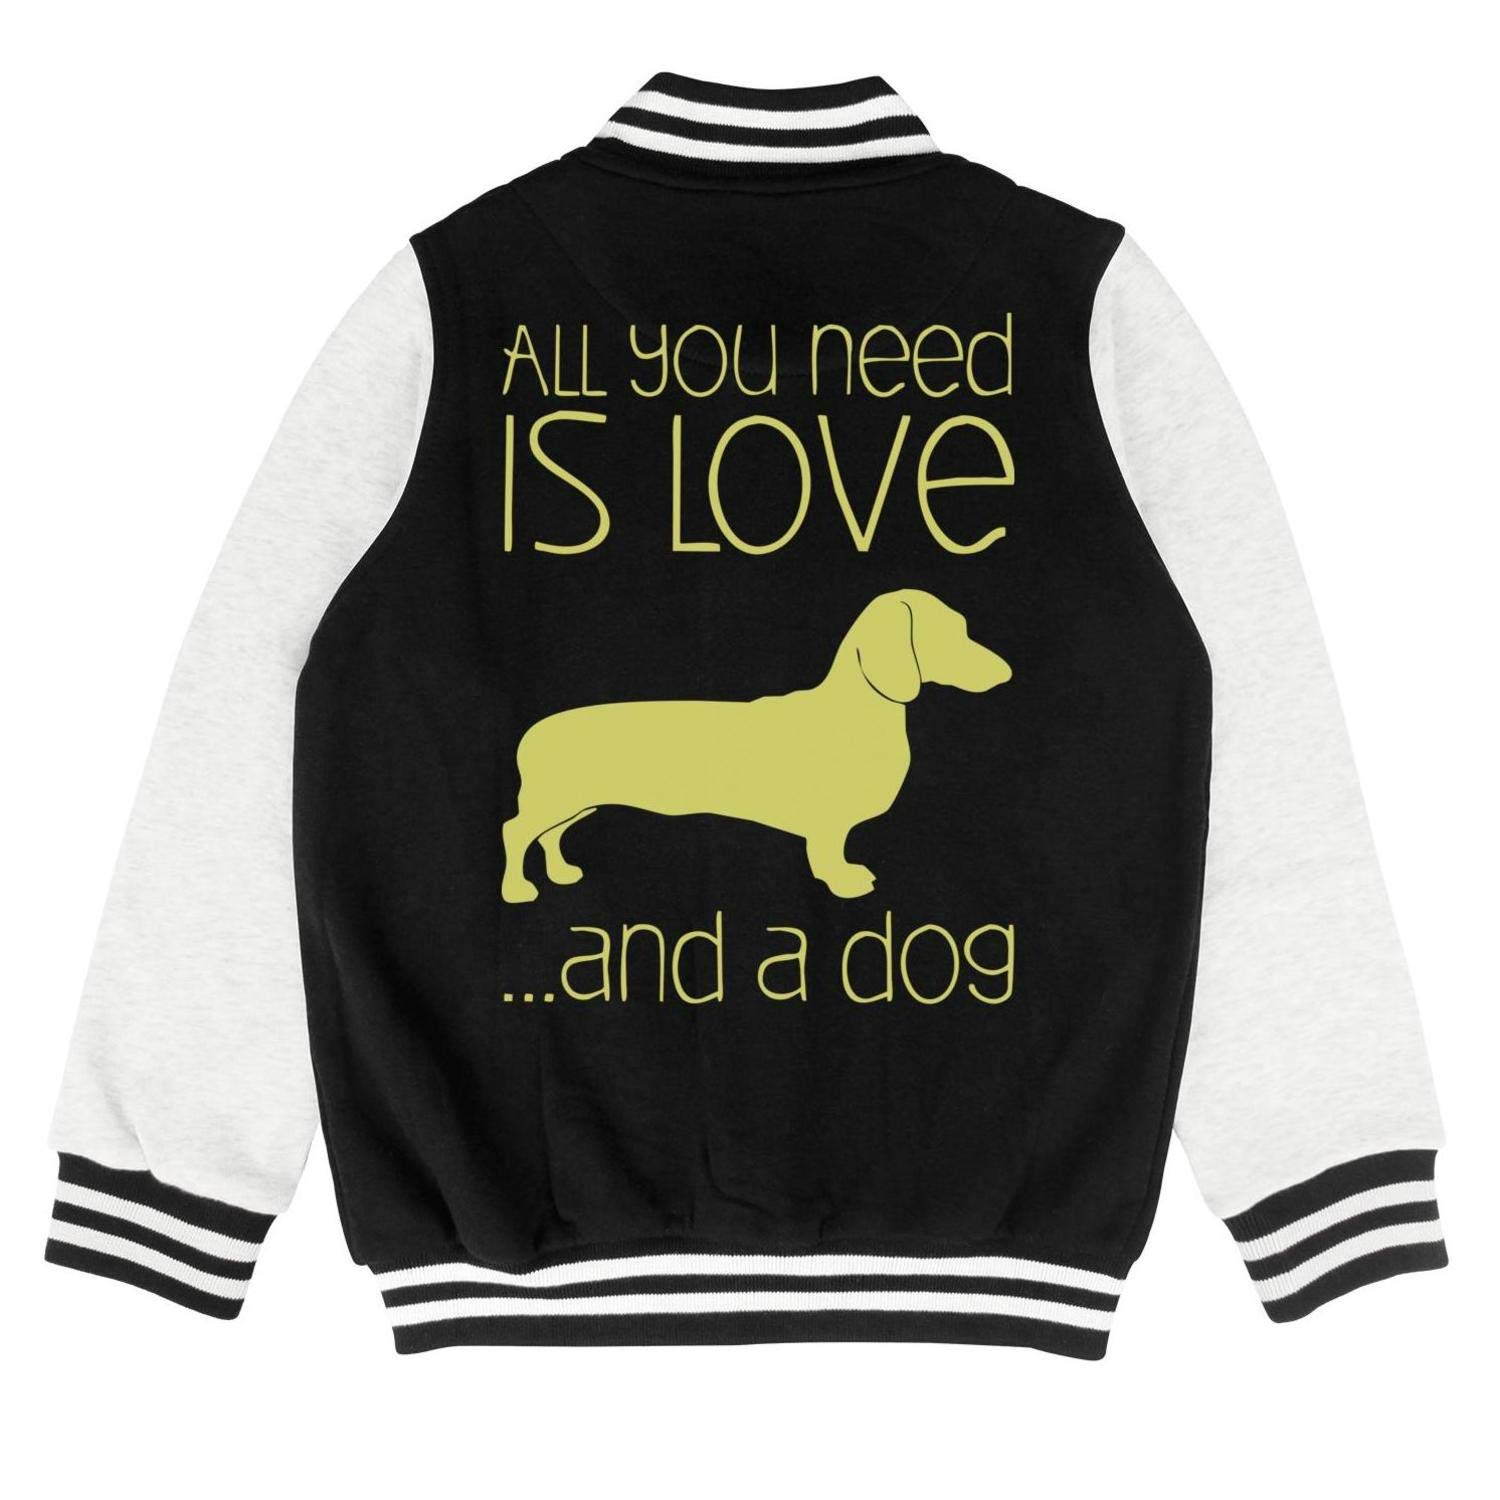 PoPBelle Kids I Just Want to Drink Wine and Pet My Dog Youth Jacket for Girls Boys Cute Outerwear Coats